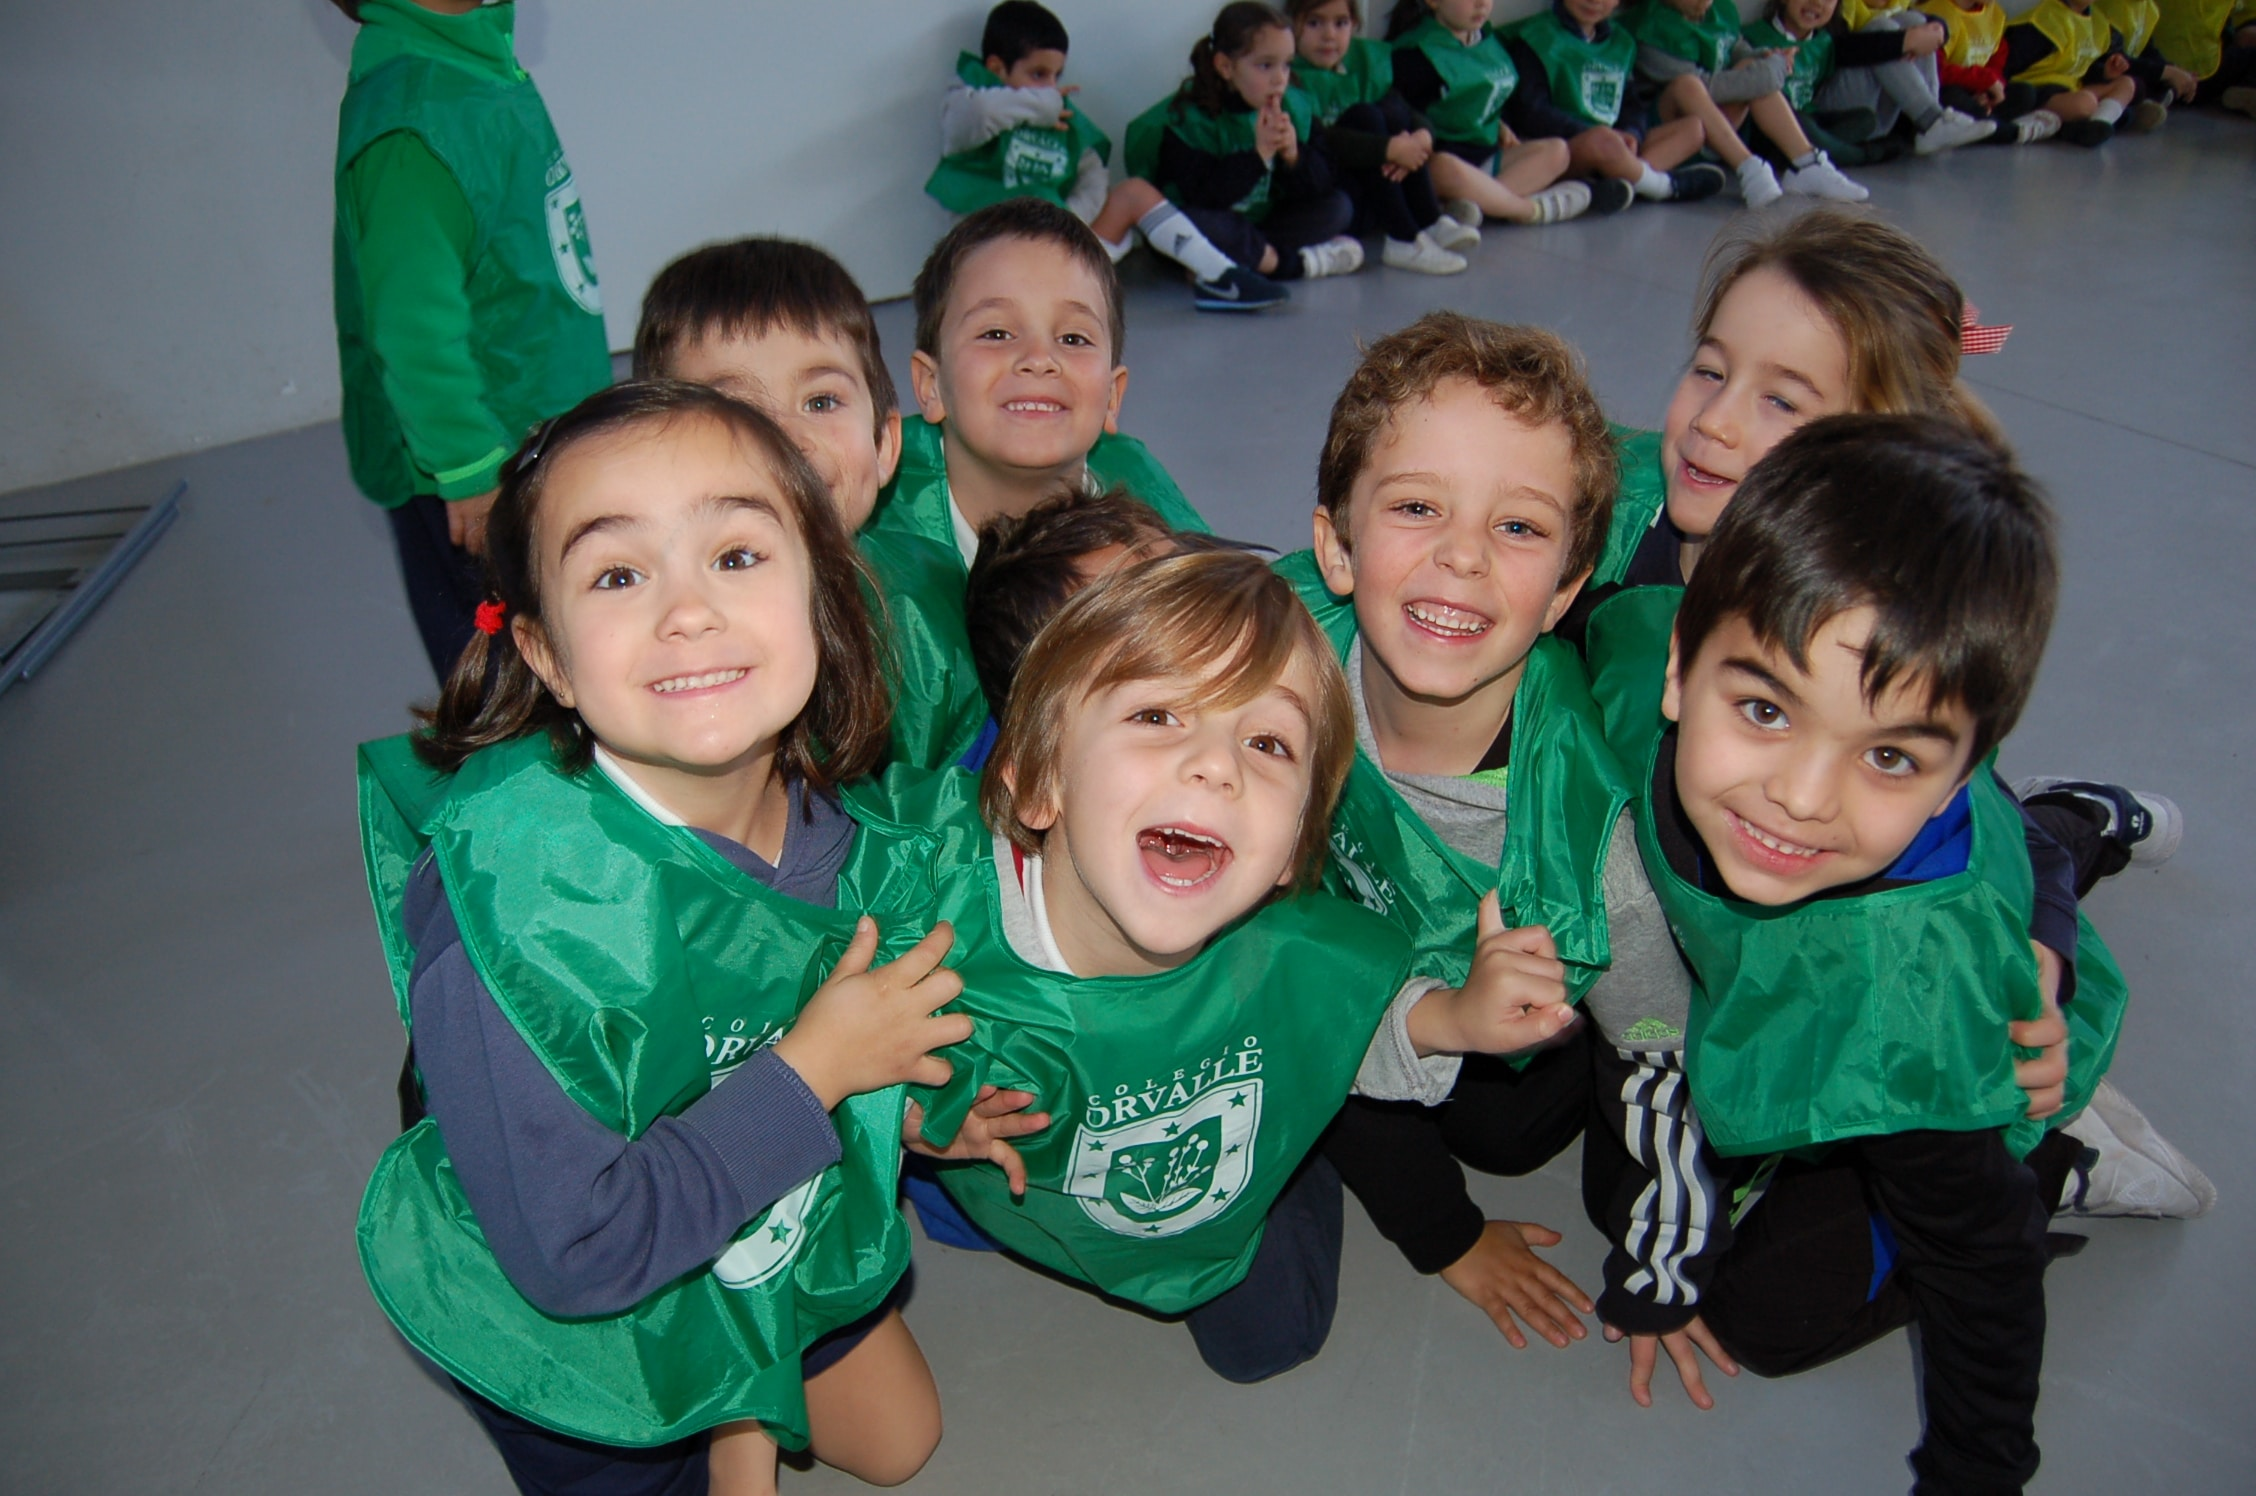 sportsday-orvalle (184)